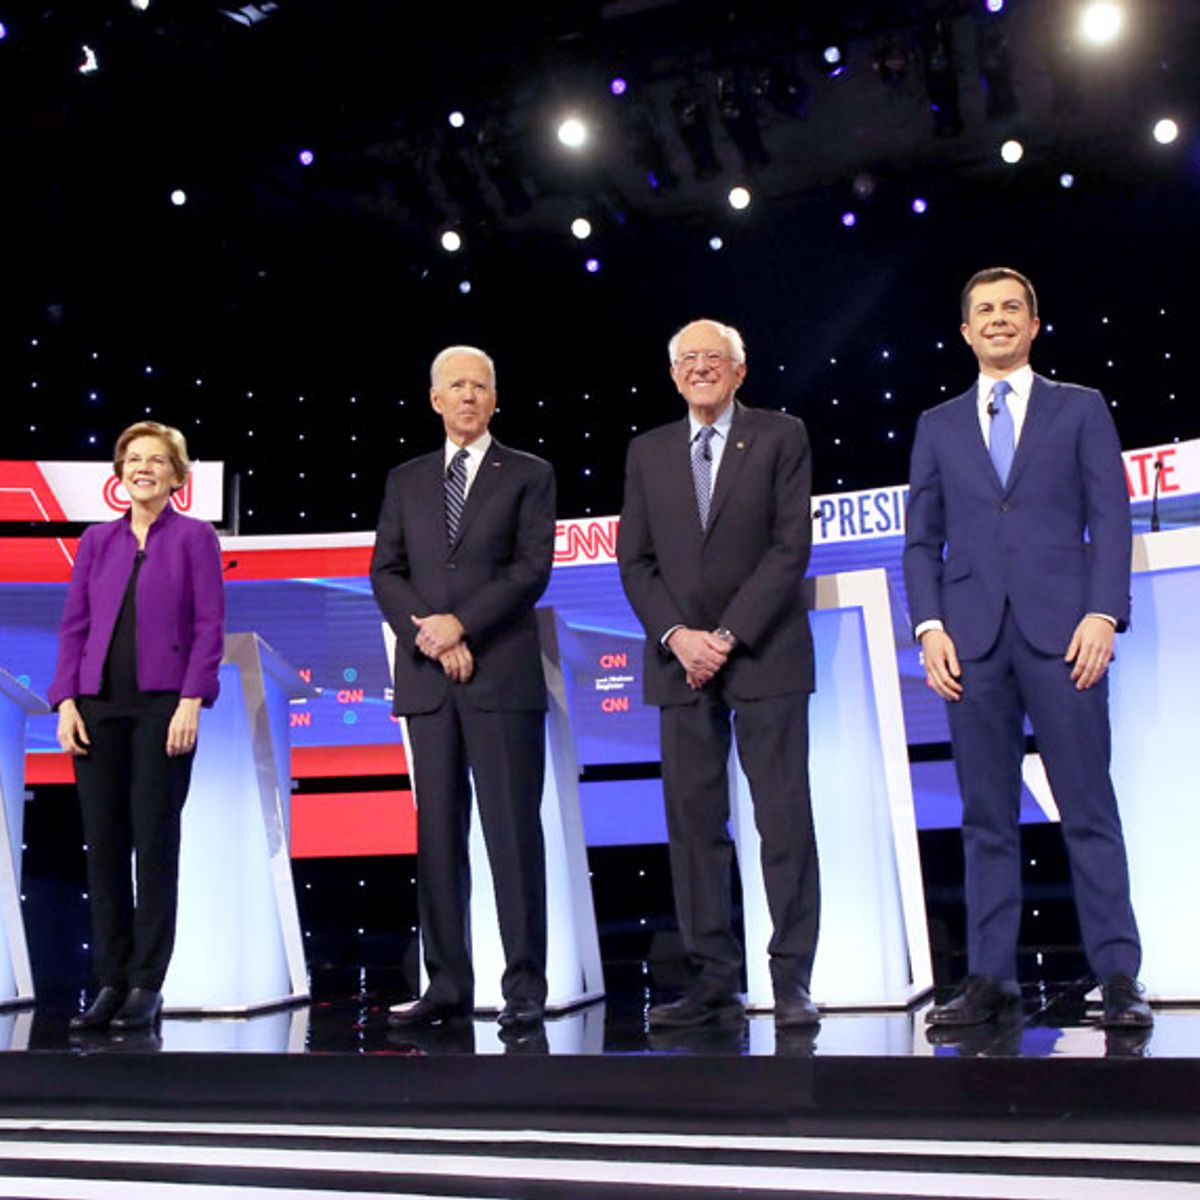 3 quotes that defined the first Democratic debate of 2020